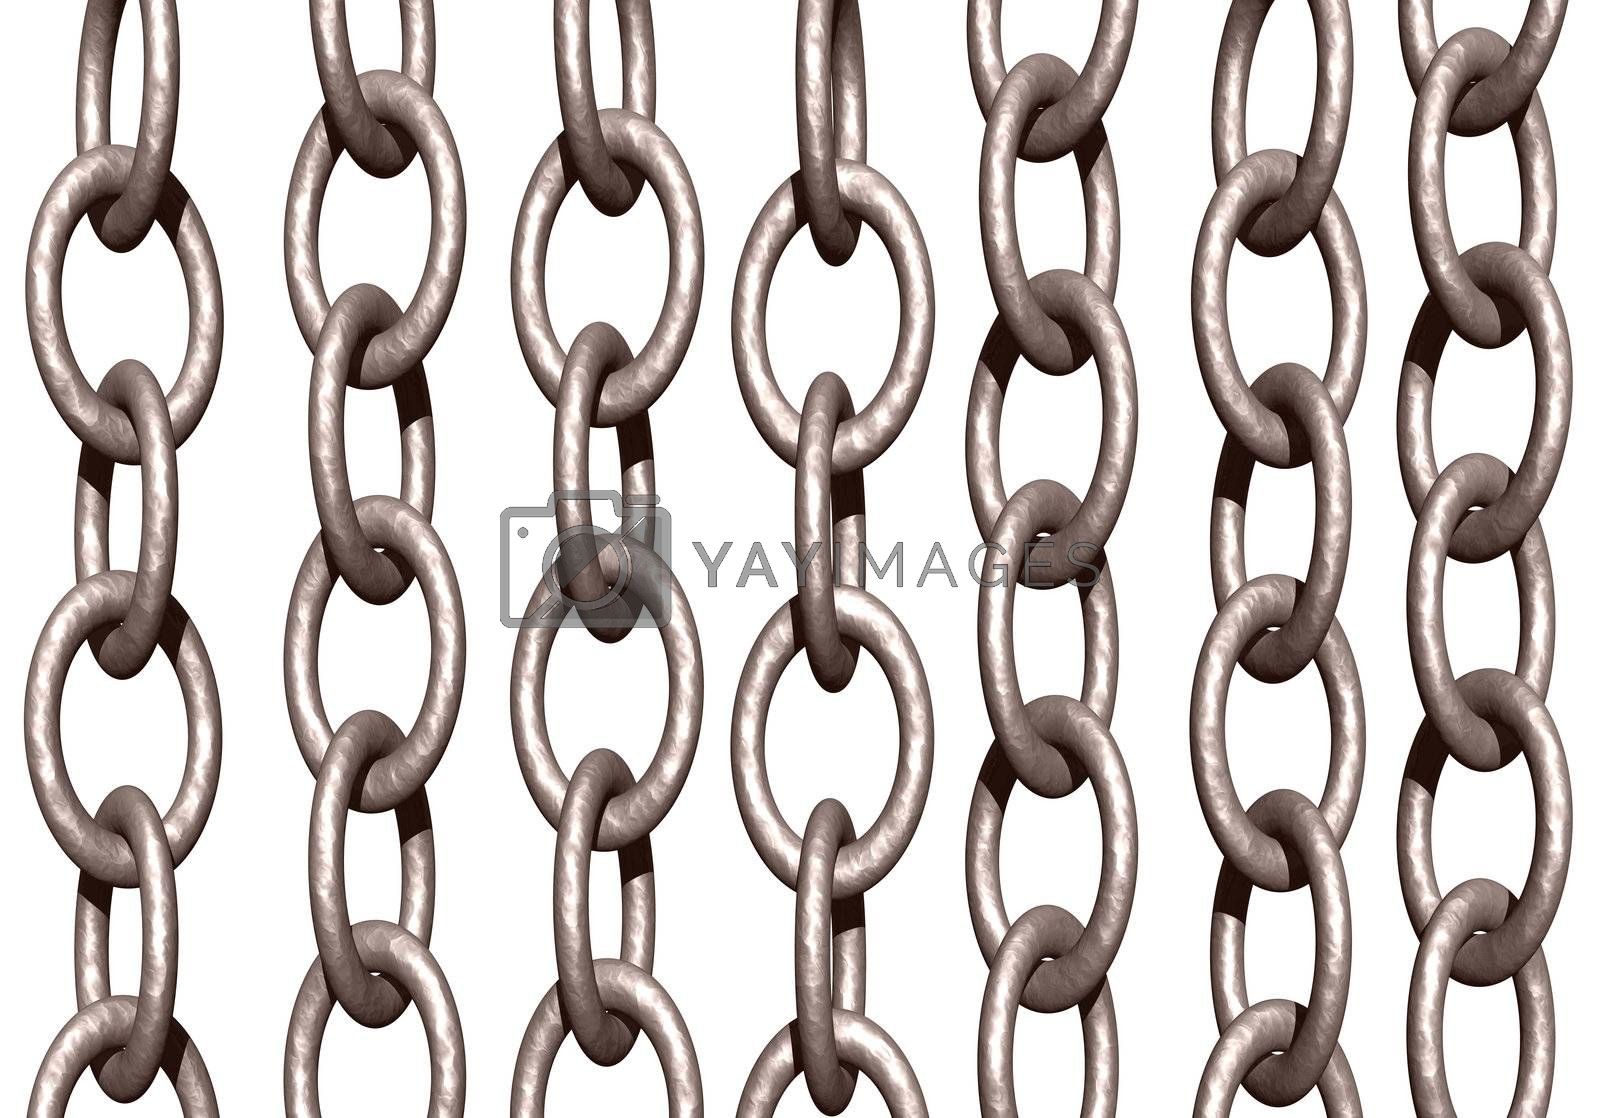 Royalty free image of chains by drizzd